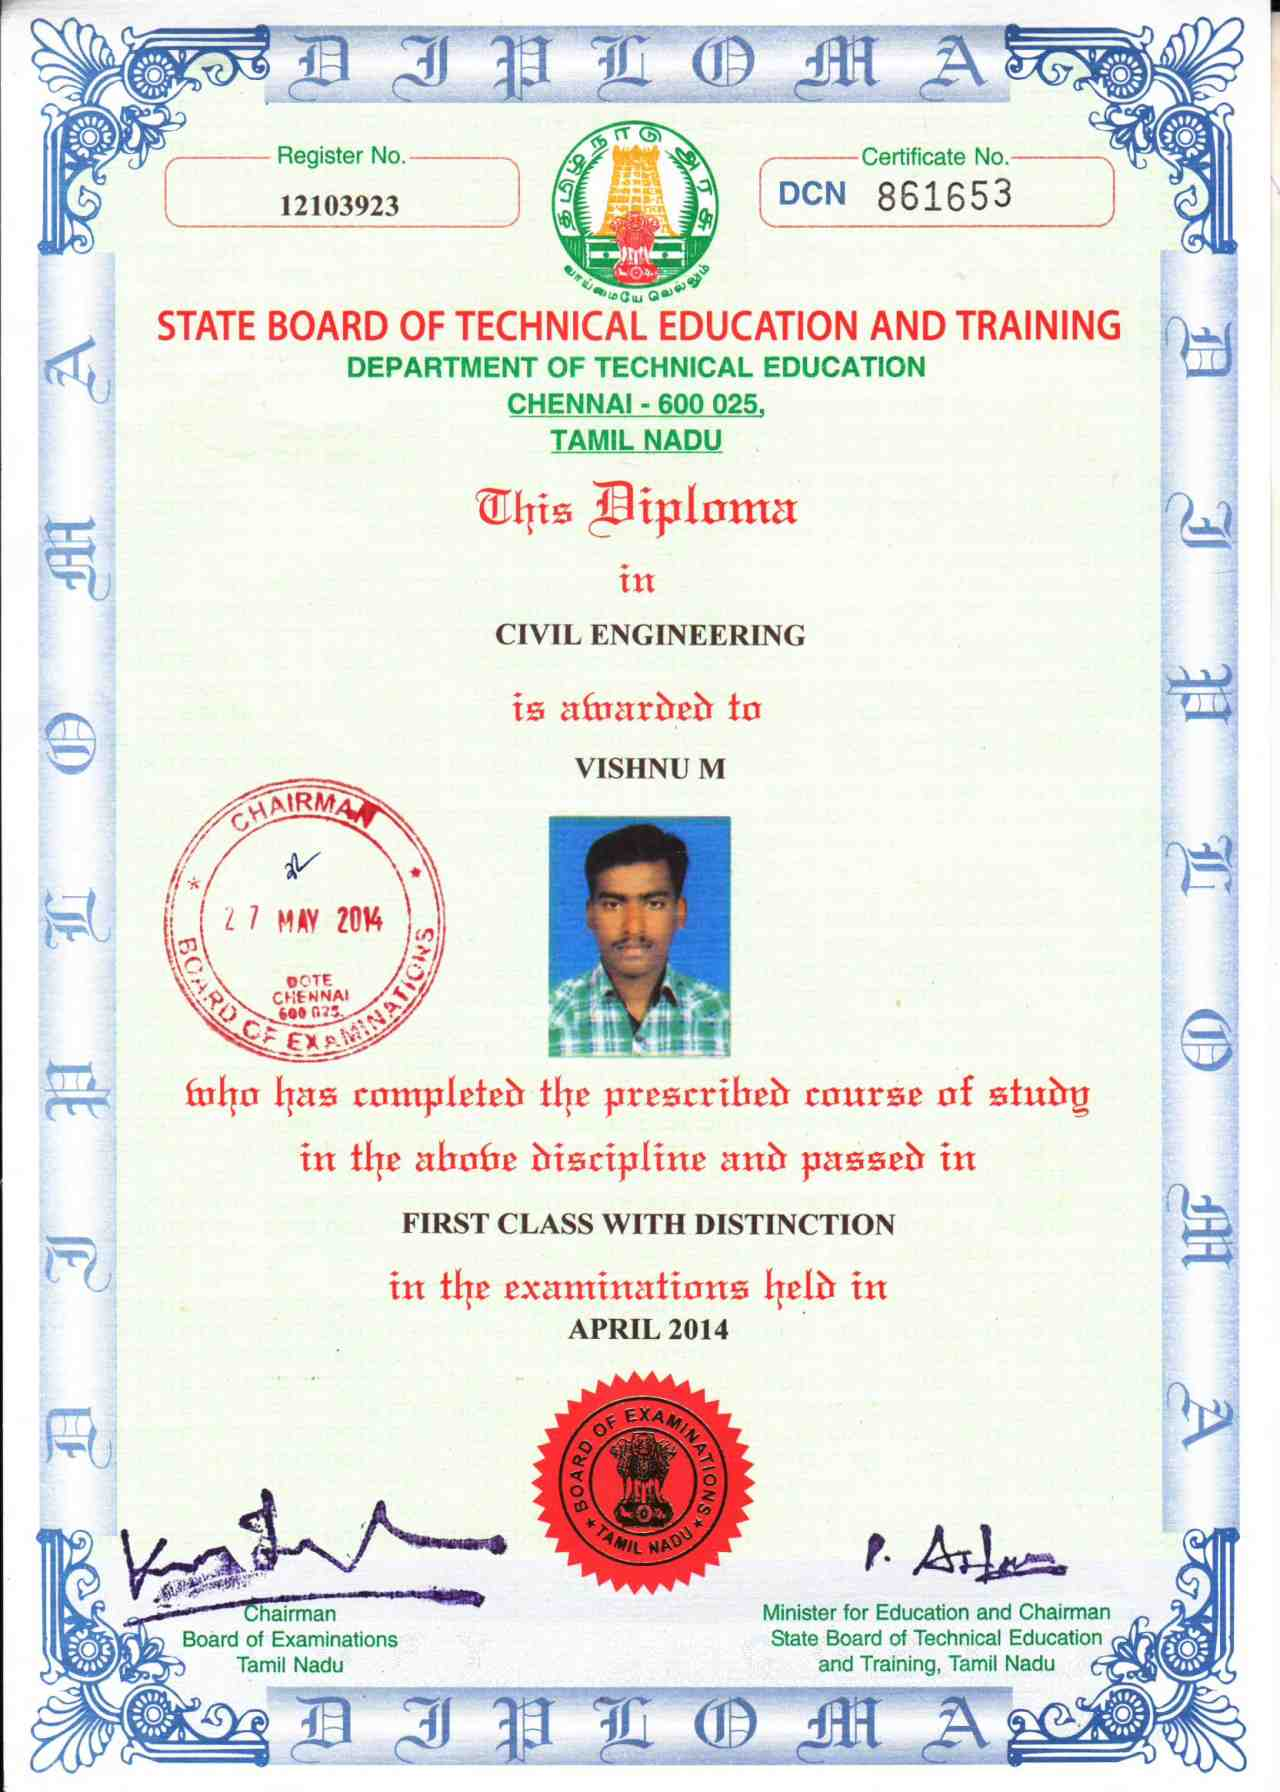 Vishnu mohanan bayt certification in 3d modeling animation revit architecture undergone training in hse management system and awareness programme conducted by sdt 1betcityfo Choice Image